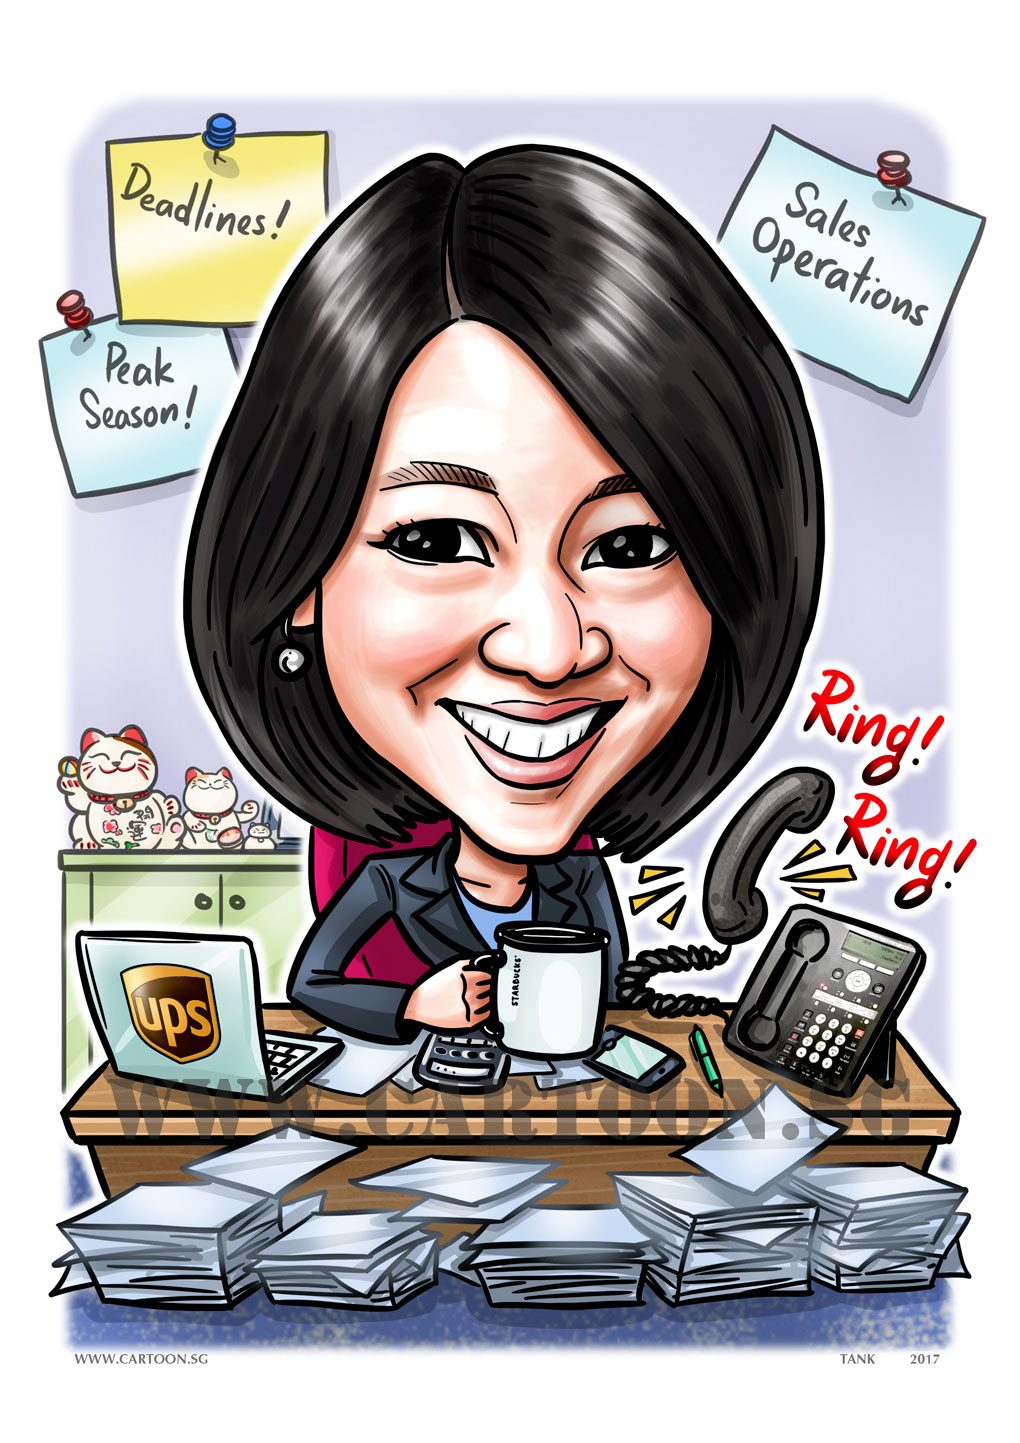 2017-07-11-Caricature-Singapore-office-desk-colleague-memo-pin-up-maneki-neko-mug.jpg